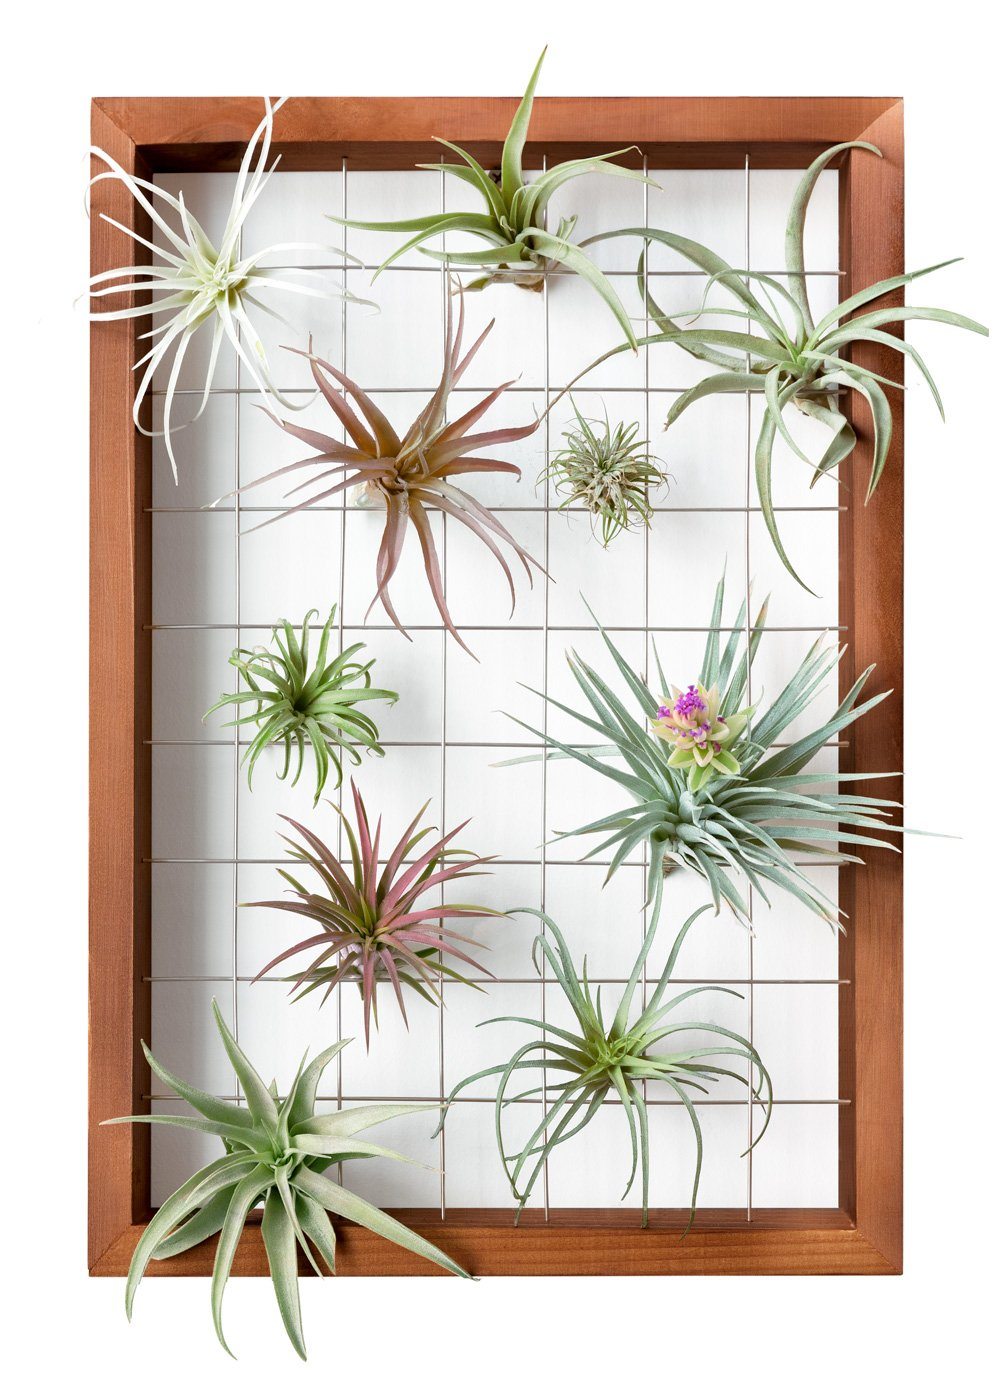 Mkono Large Air Plant Frame Hanging Airplant Holder Tillandsia Display  Hanger Wooden Shelf Wall Decor for House Plants, Succulent, 16,Inch